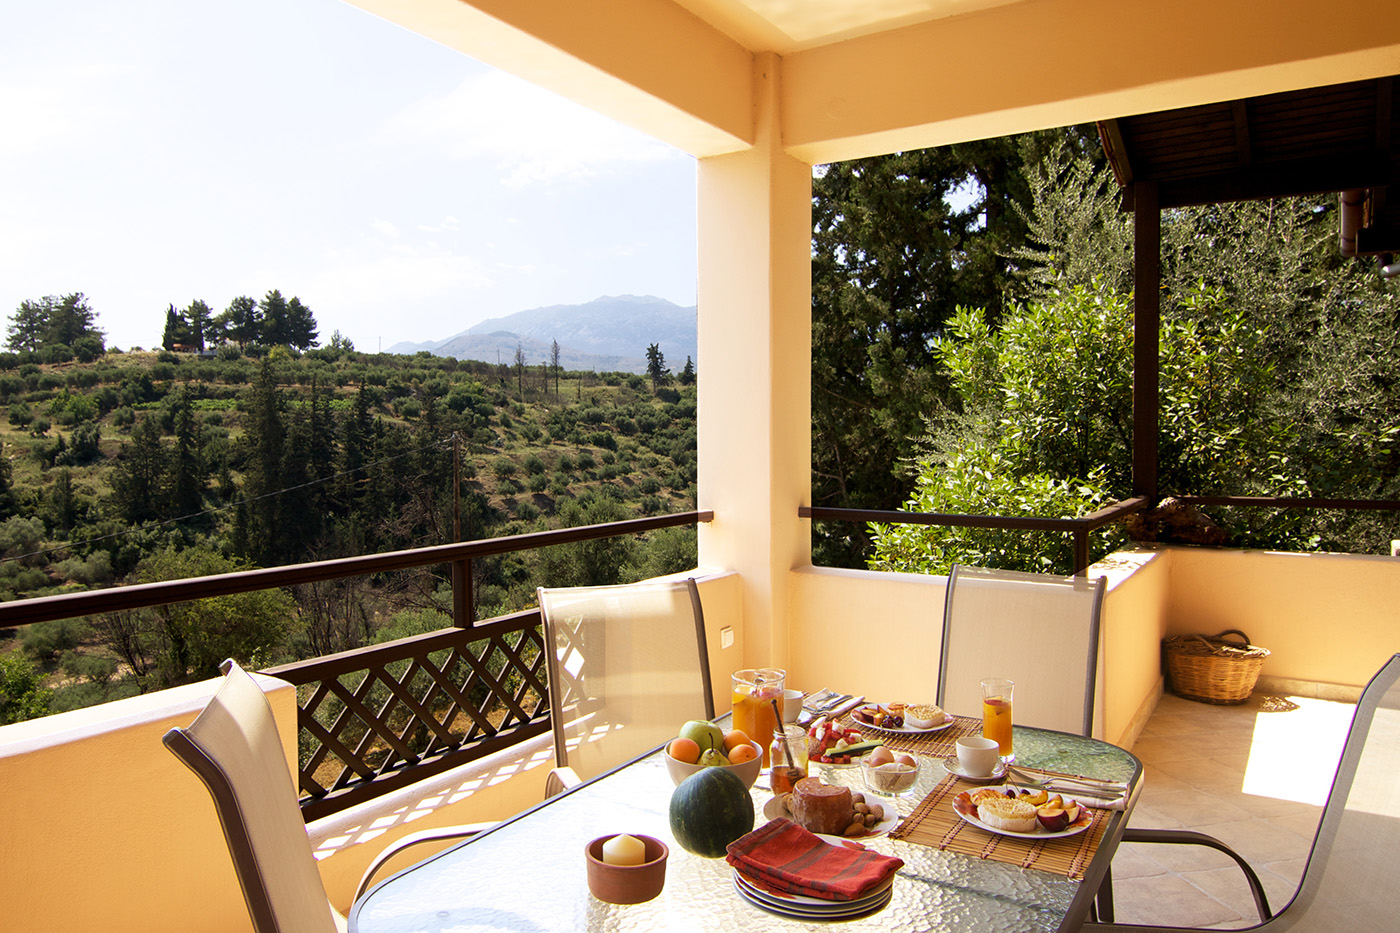 Outdoors - Panoramic view from the veranda